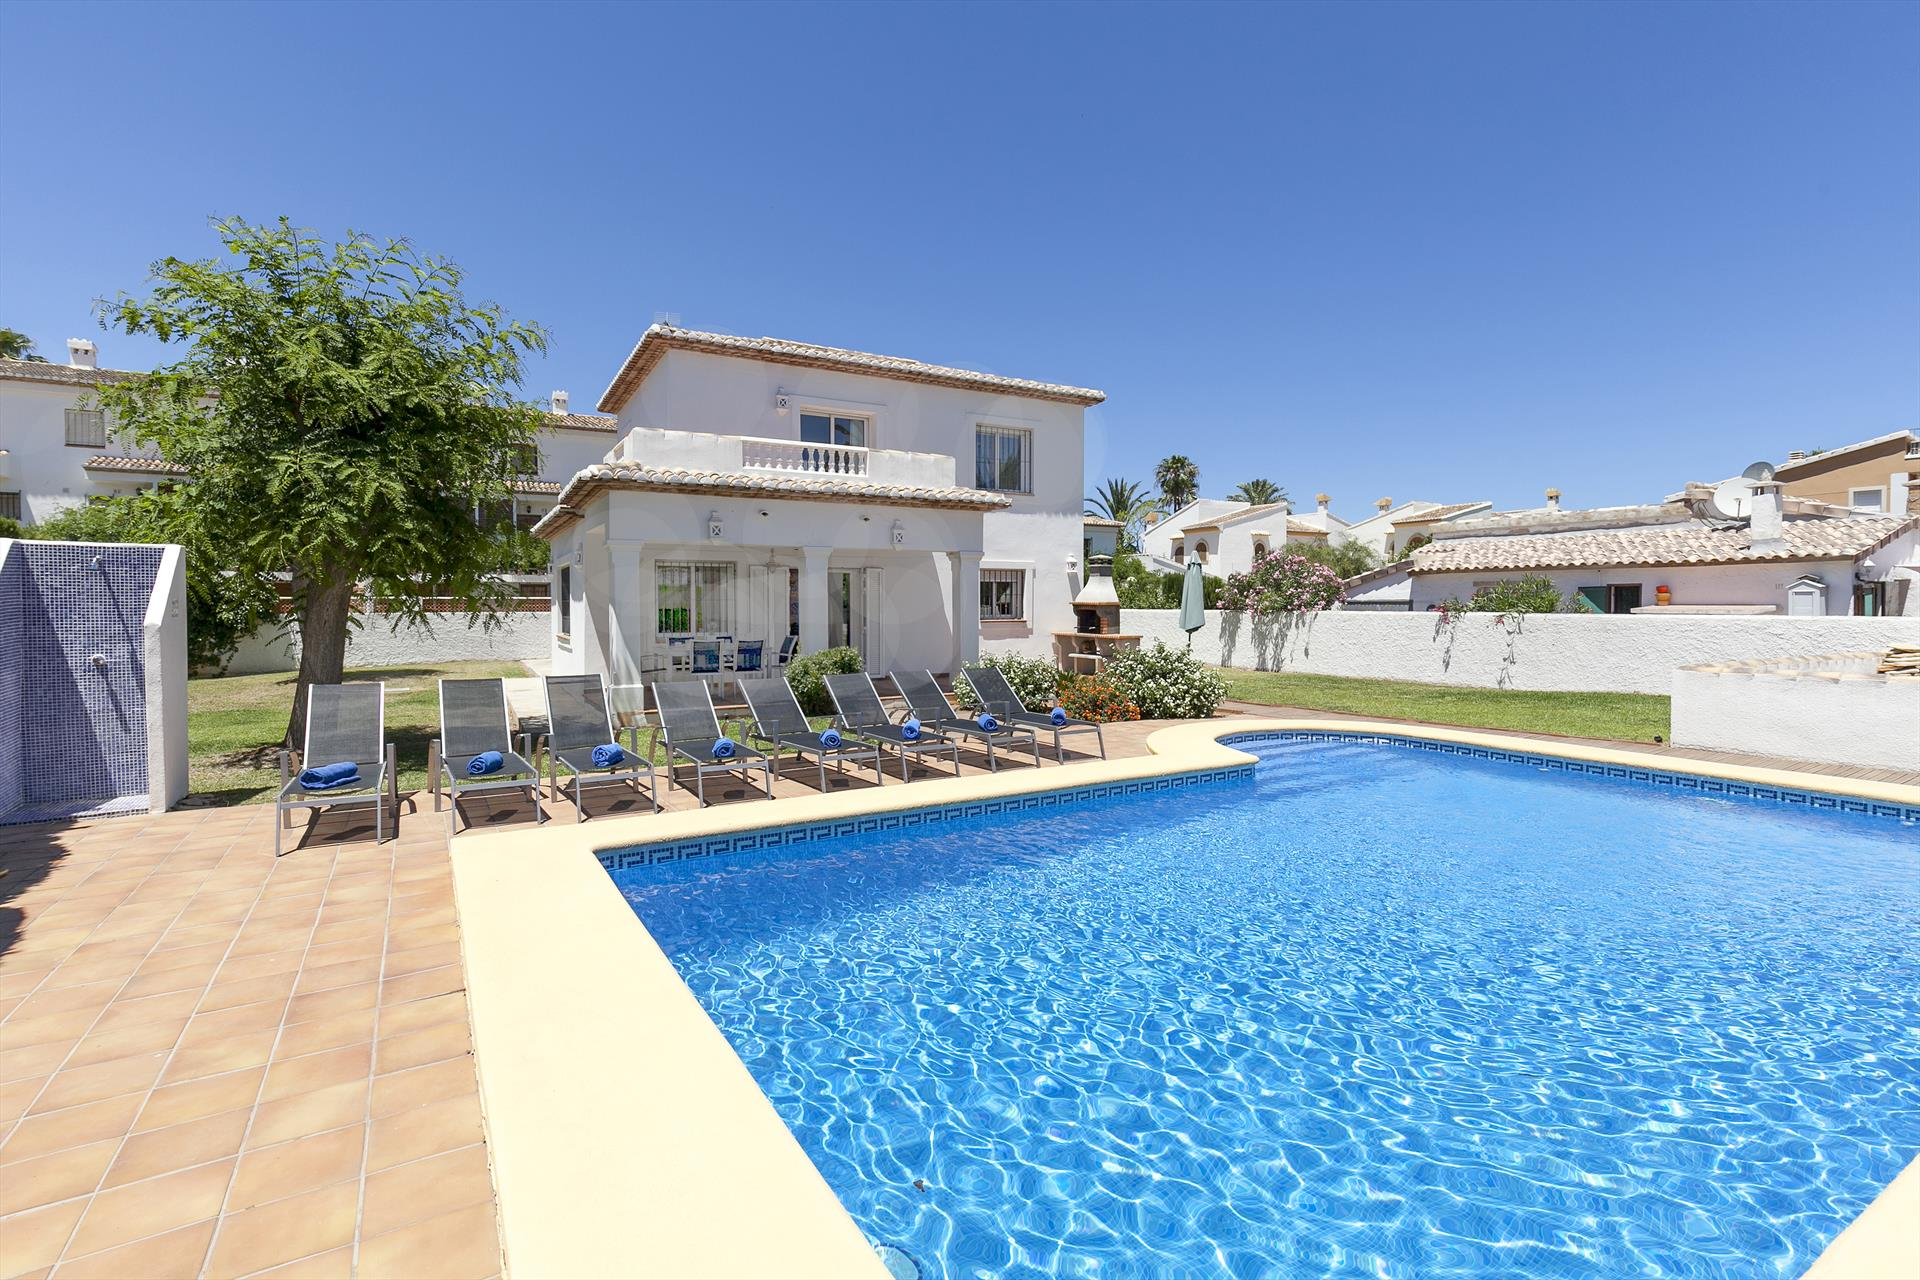 Villa Vicenta 4, Villa  with private pool in Denia, on the Costa Blanca, Spain for 4 persons...